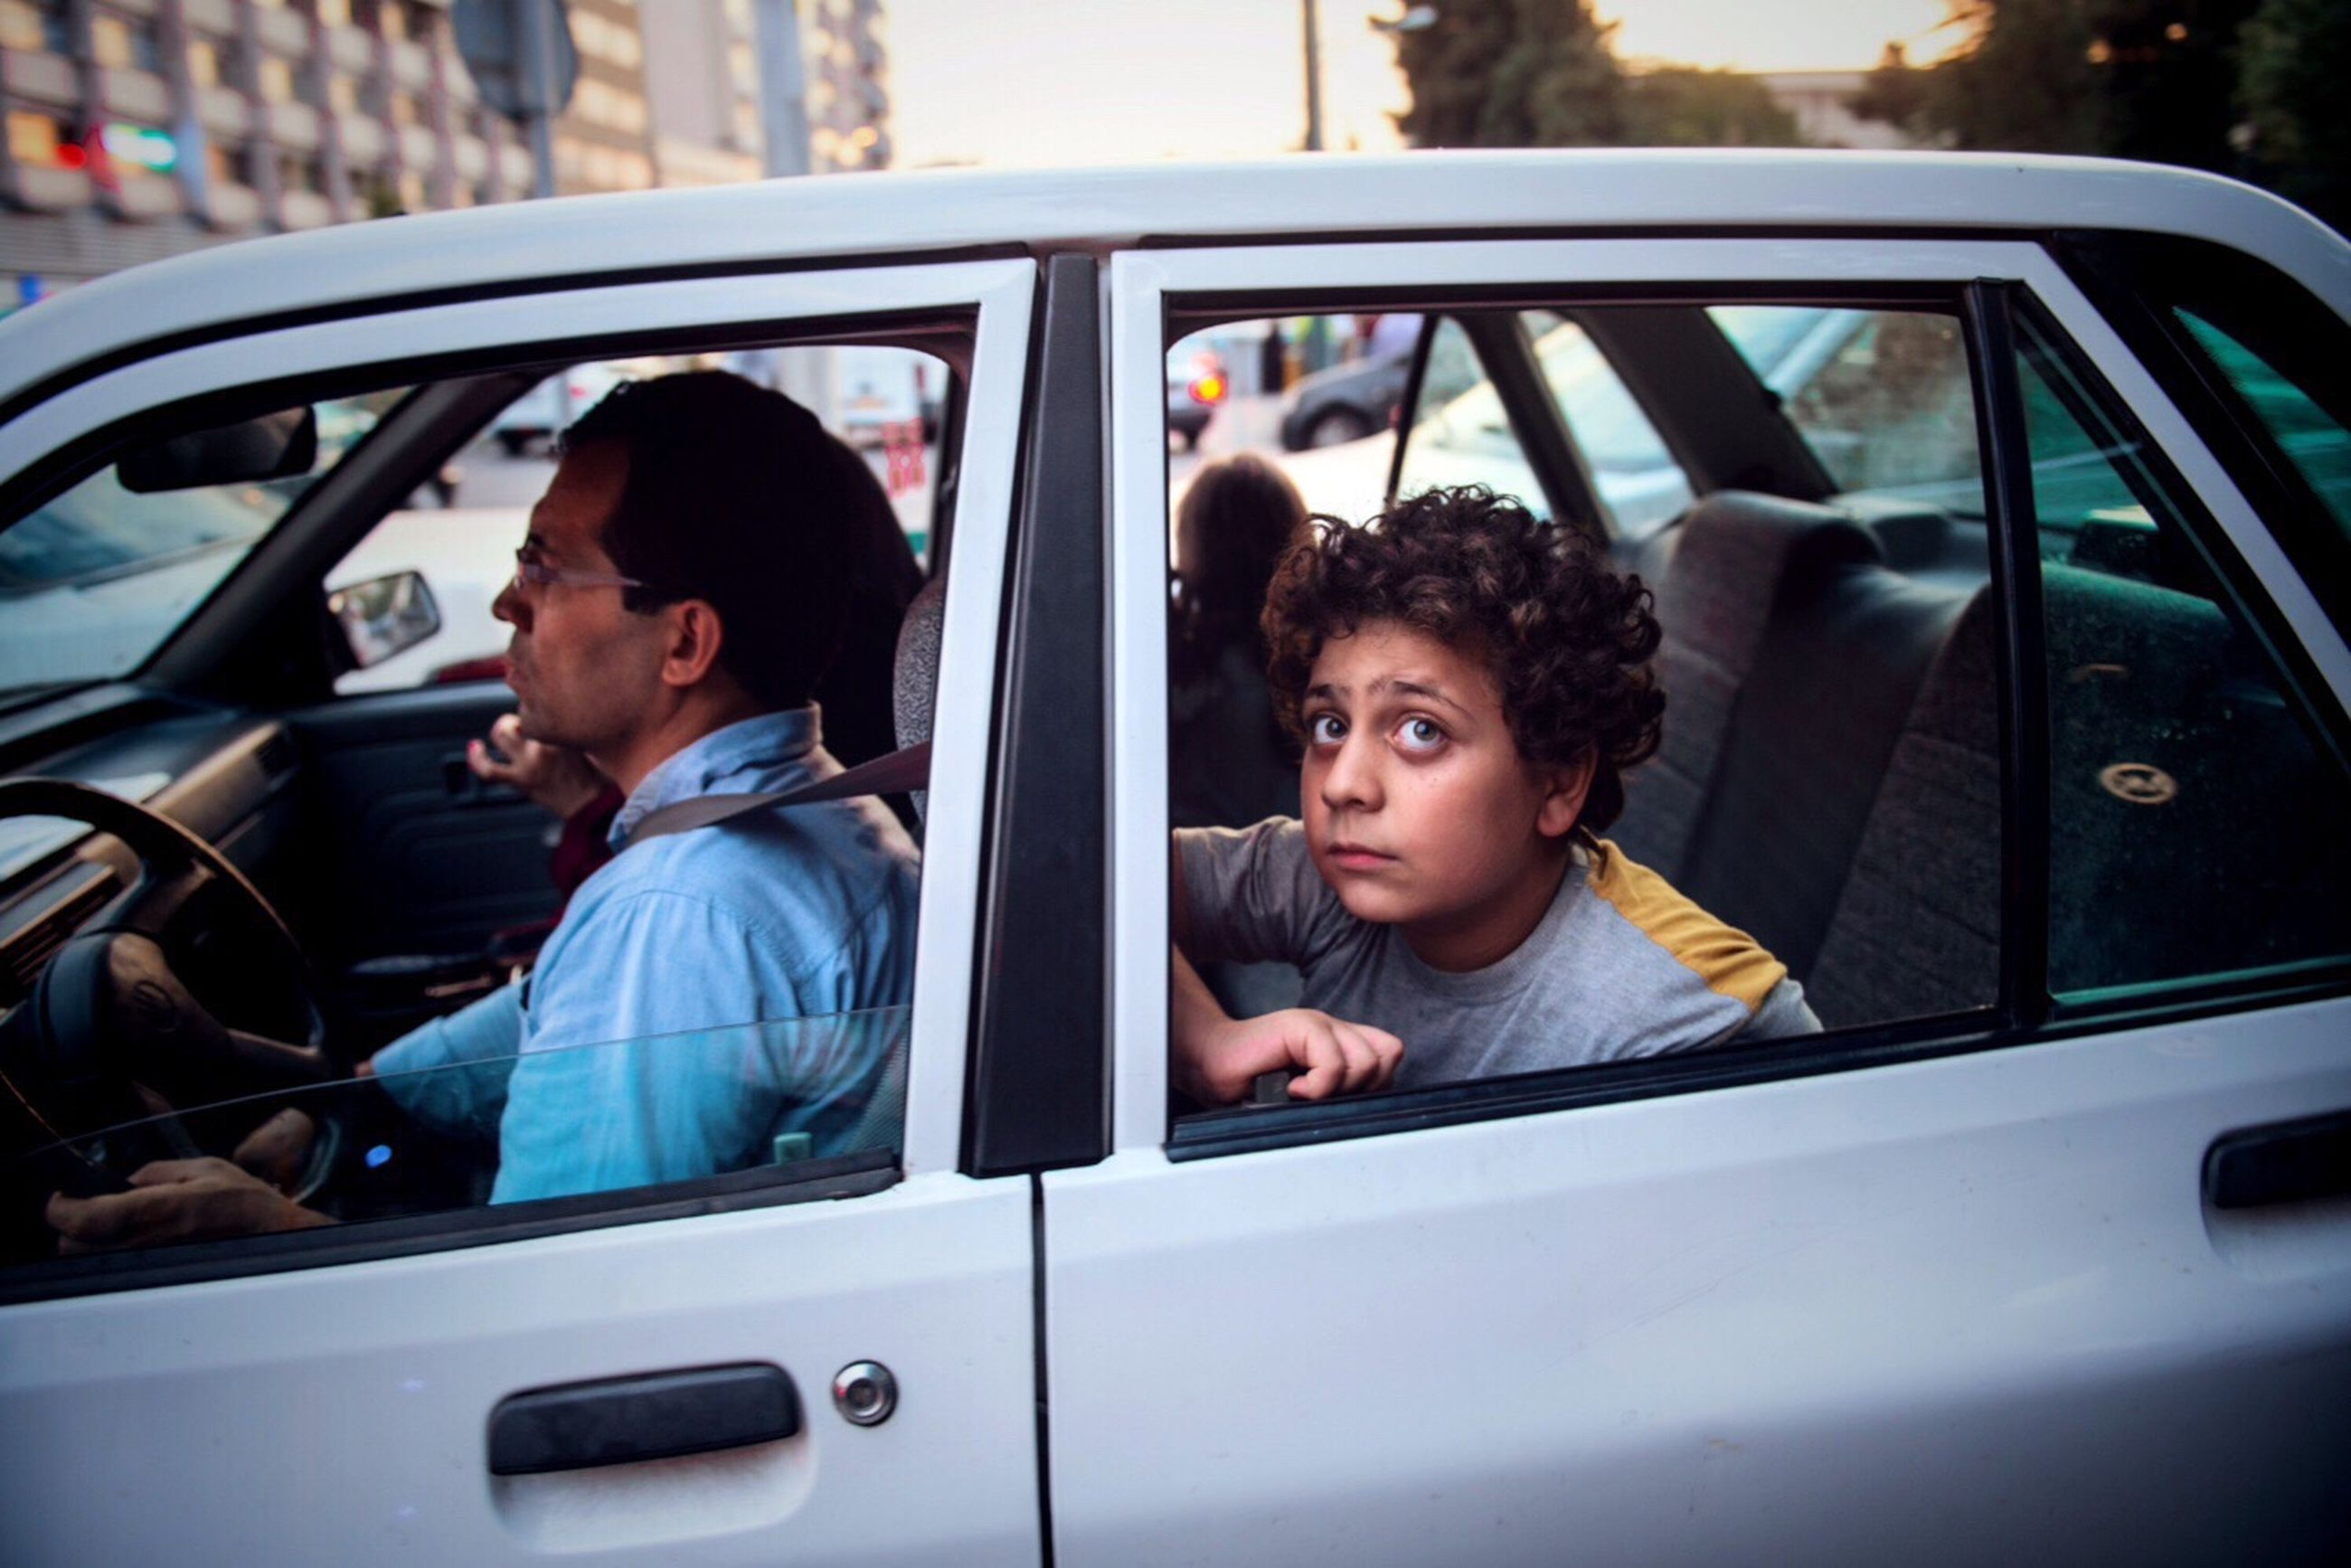 car, two people, driving, only men, transportation, window, men, looking through window, adults only, adult, headshot, people, outdoors, day